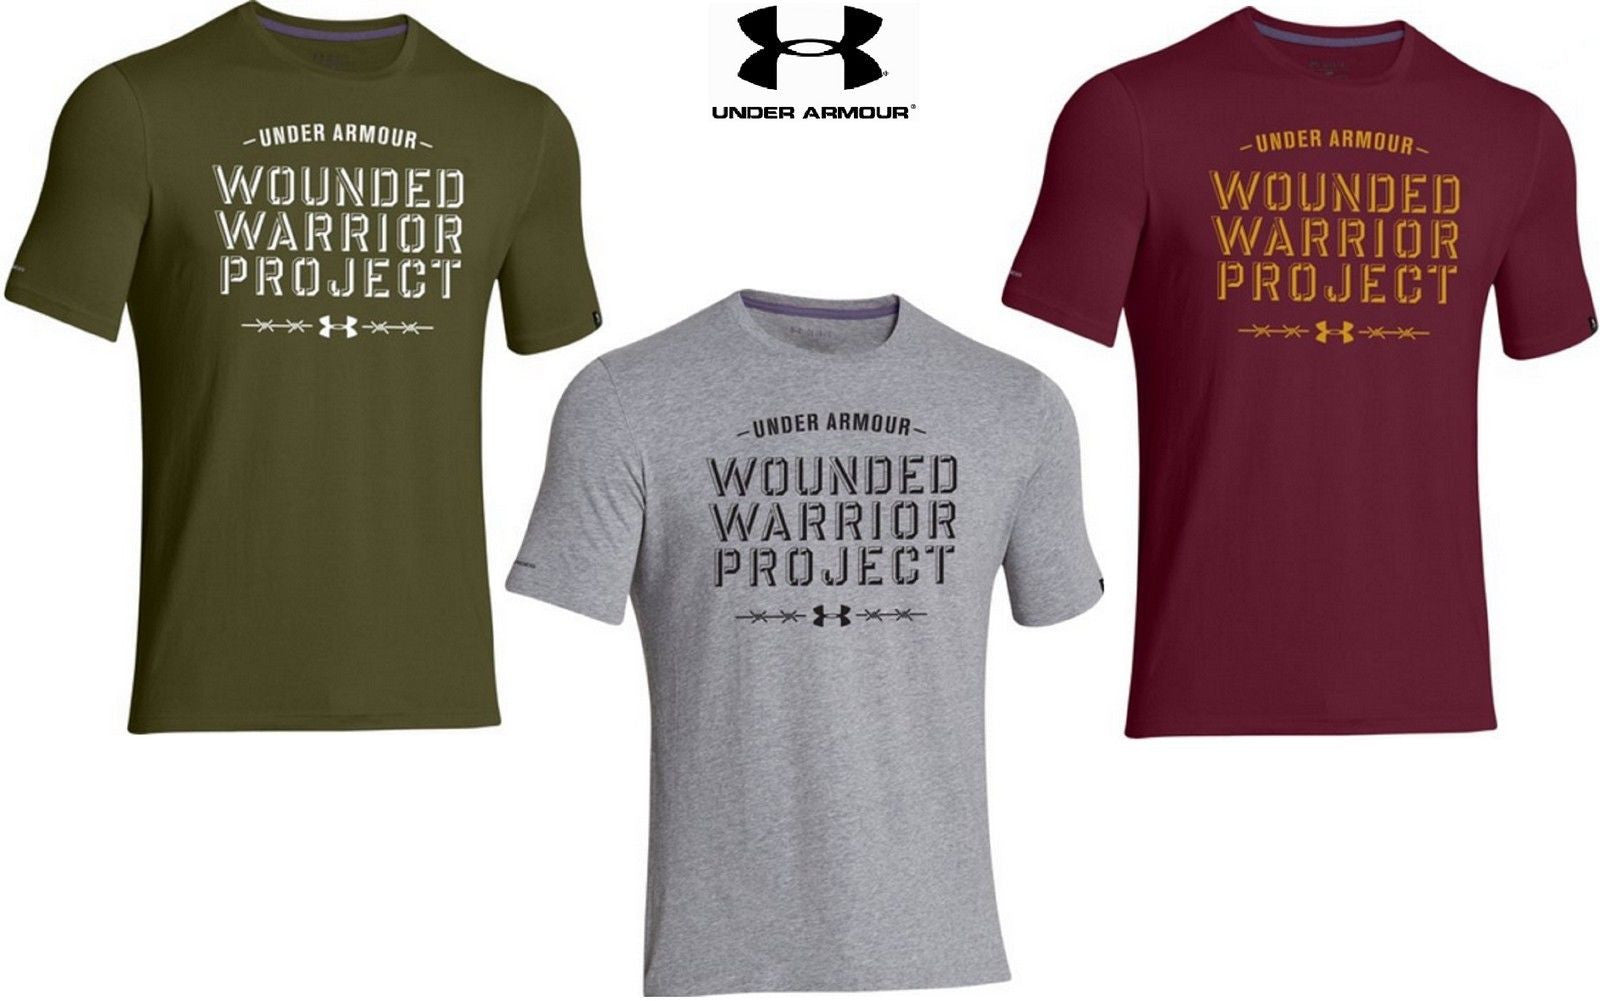 under armour wounded warrior project Ua freedom is an under armour program that supports the efforts of the wounded warrior project whose mission is to honor, raise awareness.